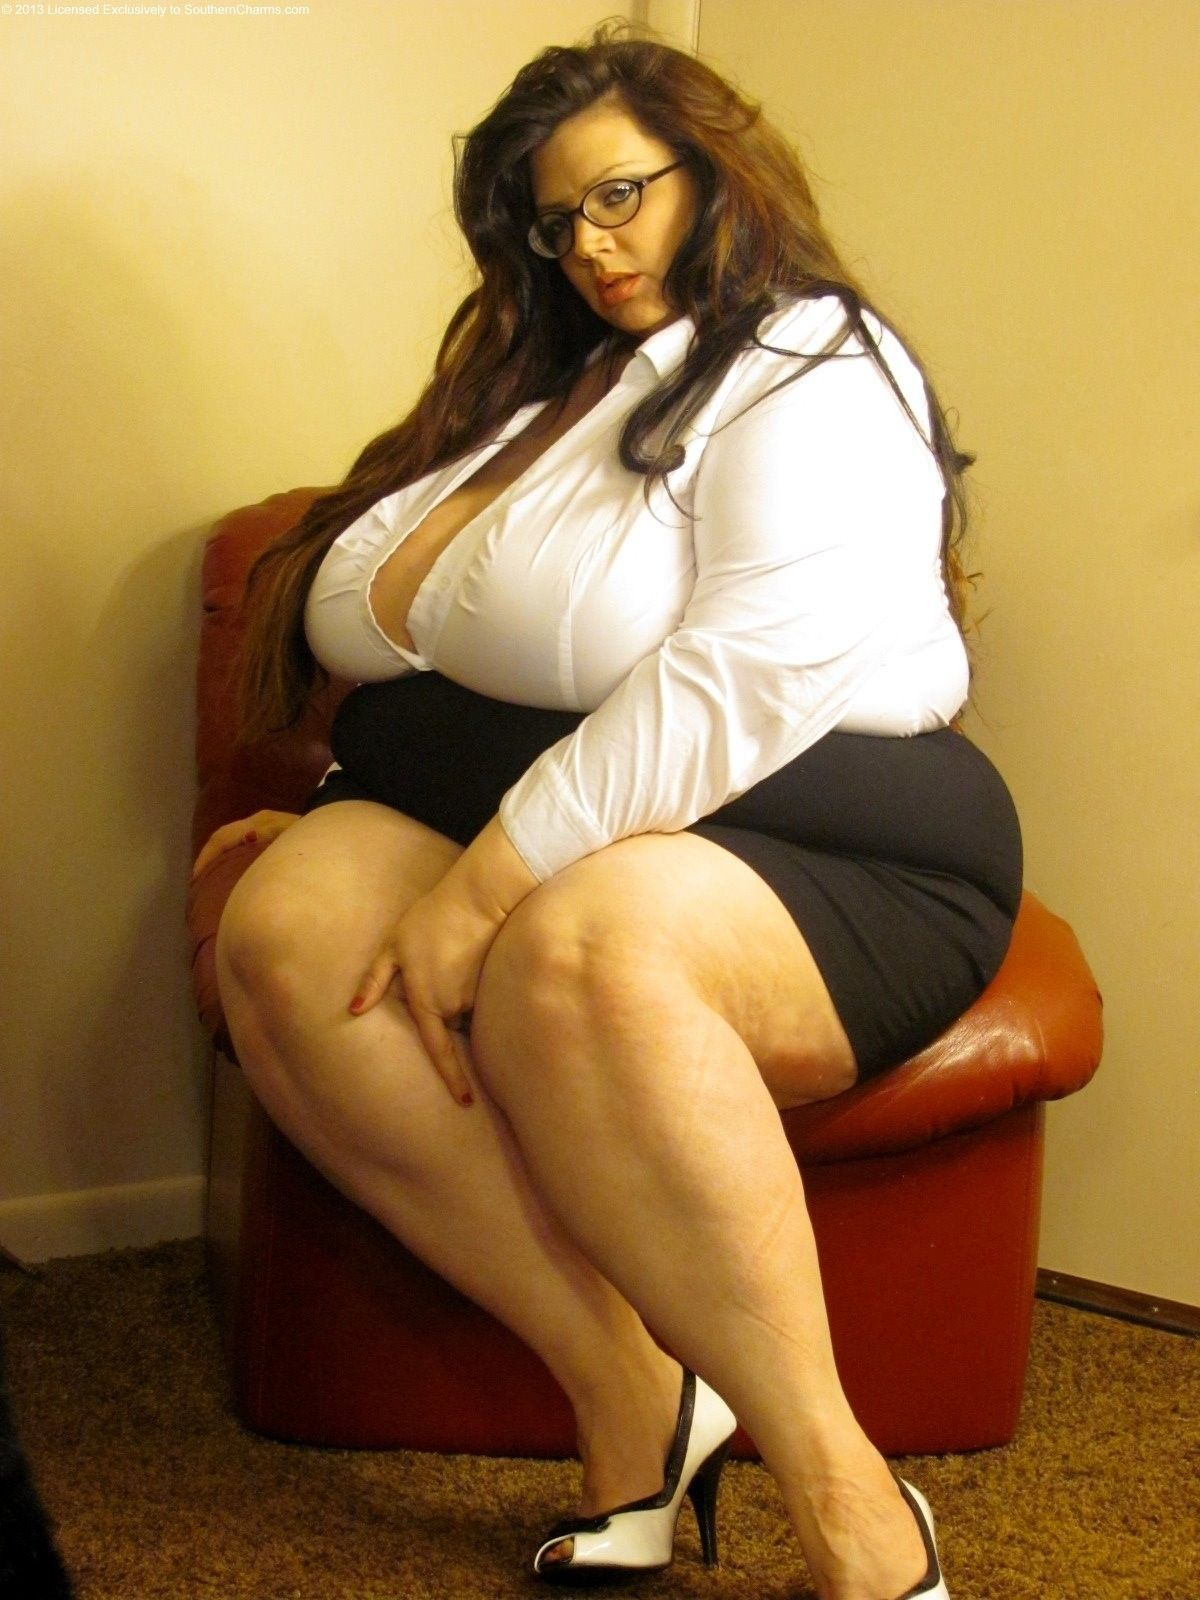 Love These Gorgeous Bbw Babes Big And Beautiful Beautiful Curves Beautiful Women